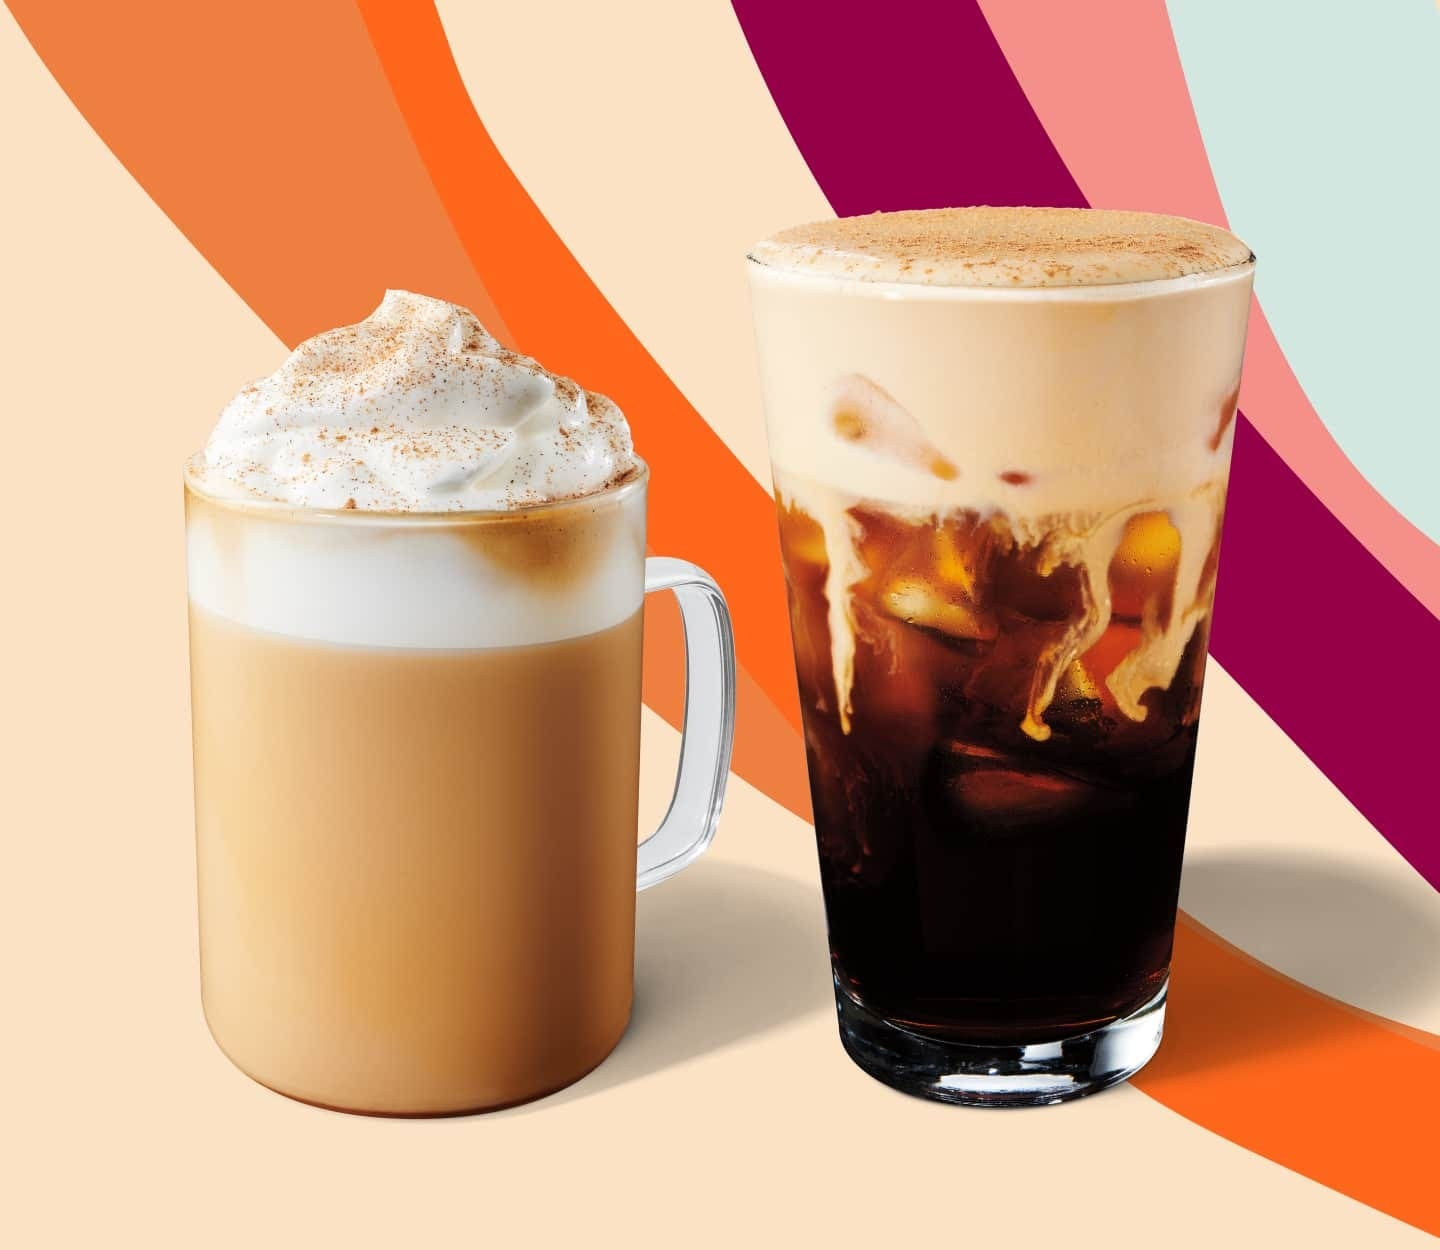 Latte and cold brew served in glassware.